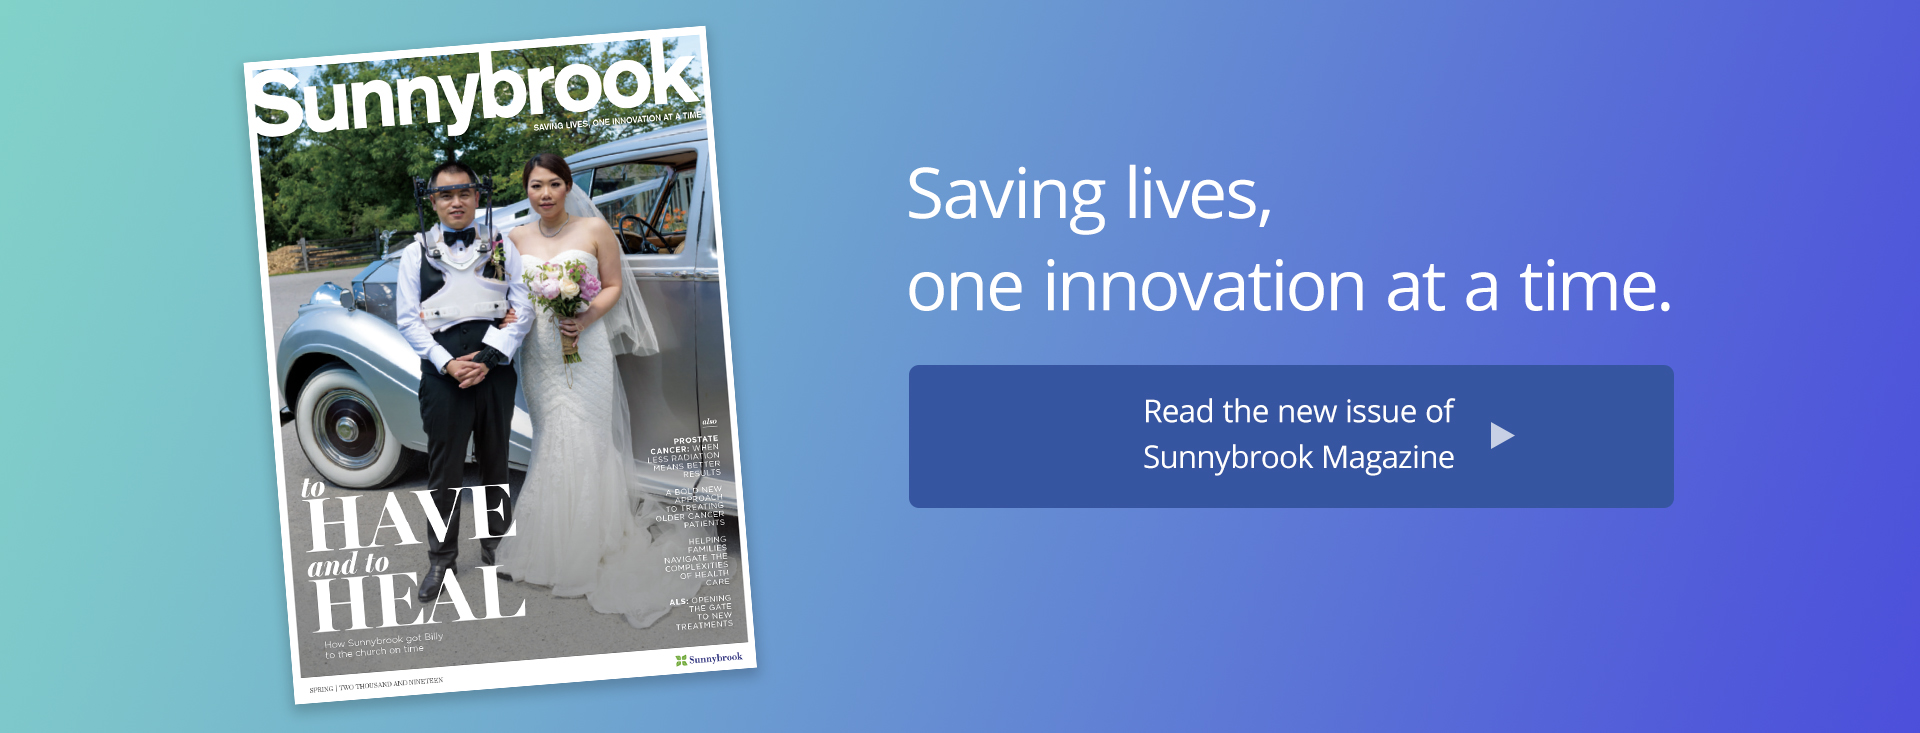 Saving lives, one innovation at a time. Read the new issue of Sunnybrook Magazine